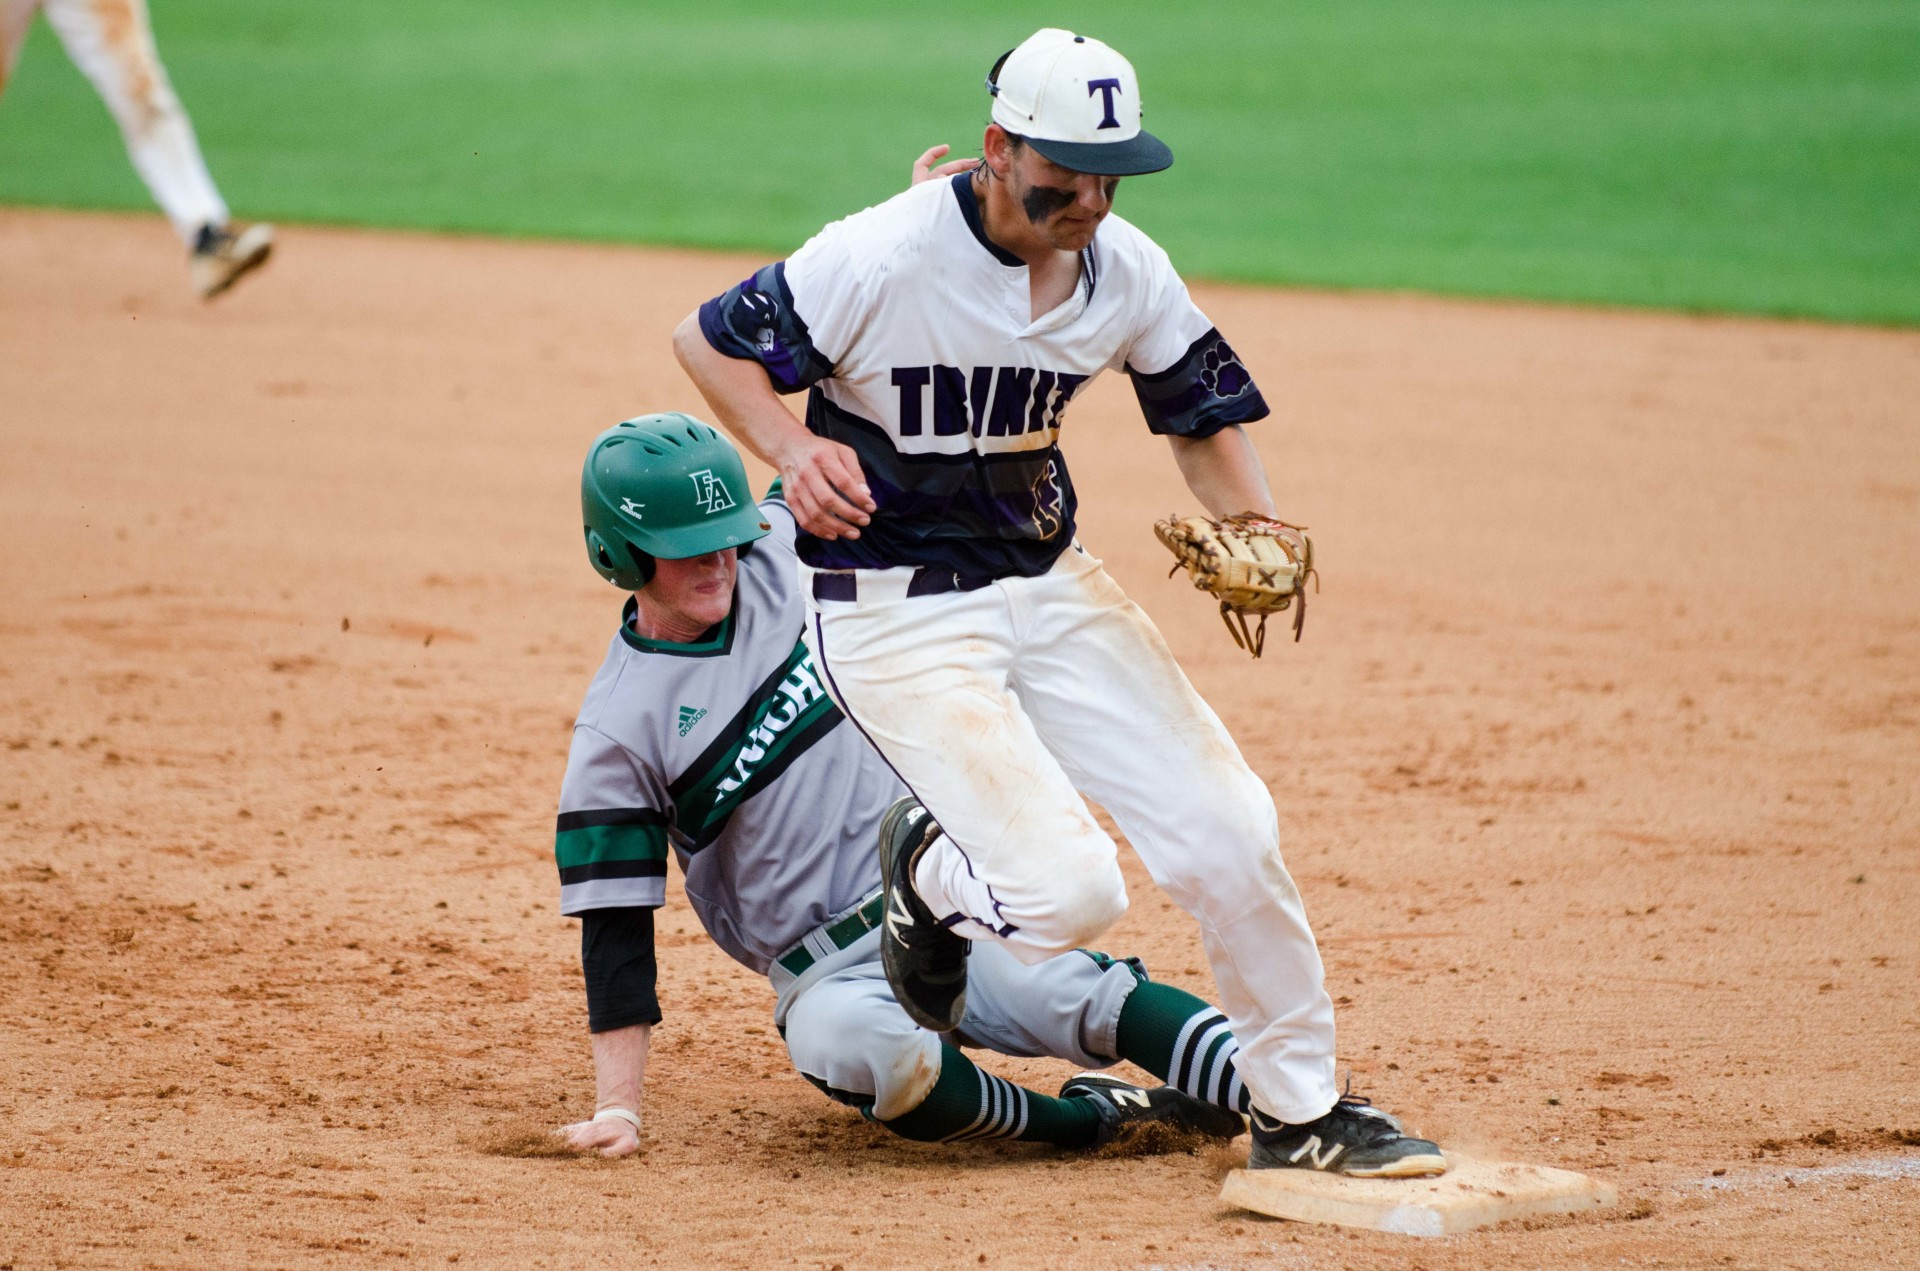 Trinity senior first baseman Jake Estes beats out Frederica's Chandler Kicklighter for a double play